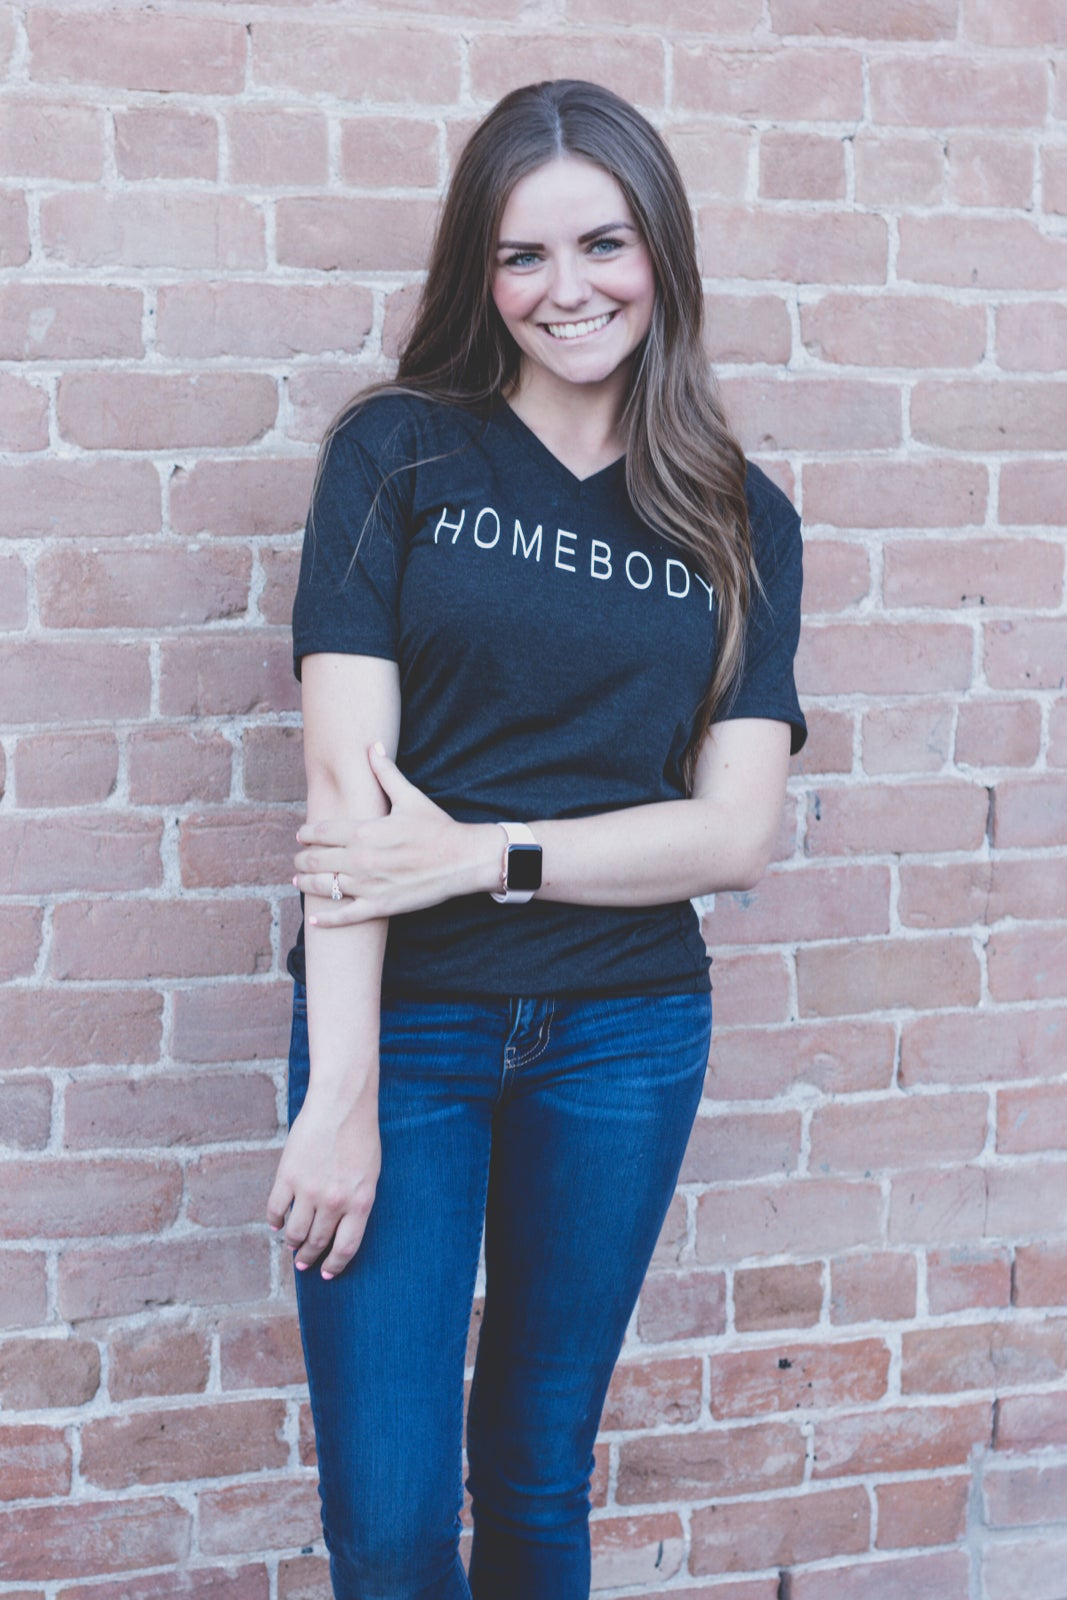 Image of Homebody in charcoal black